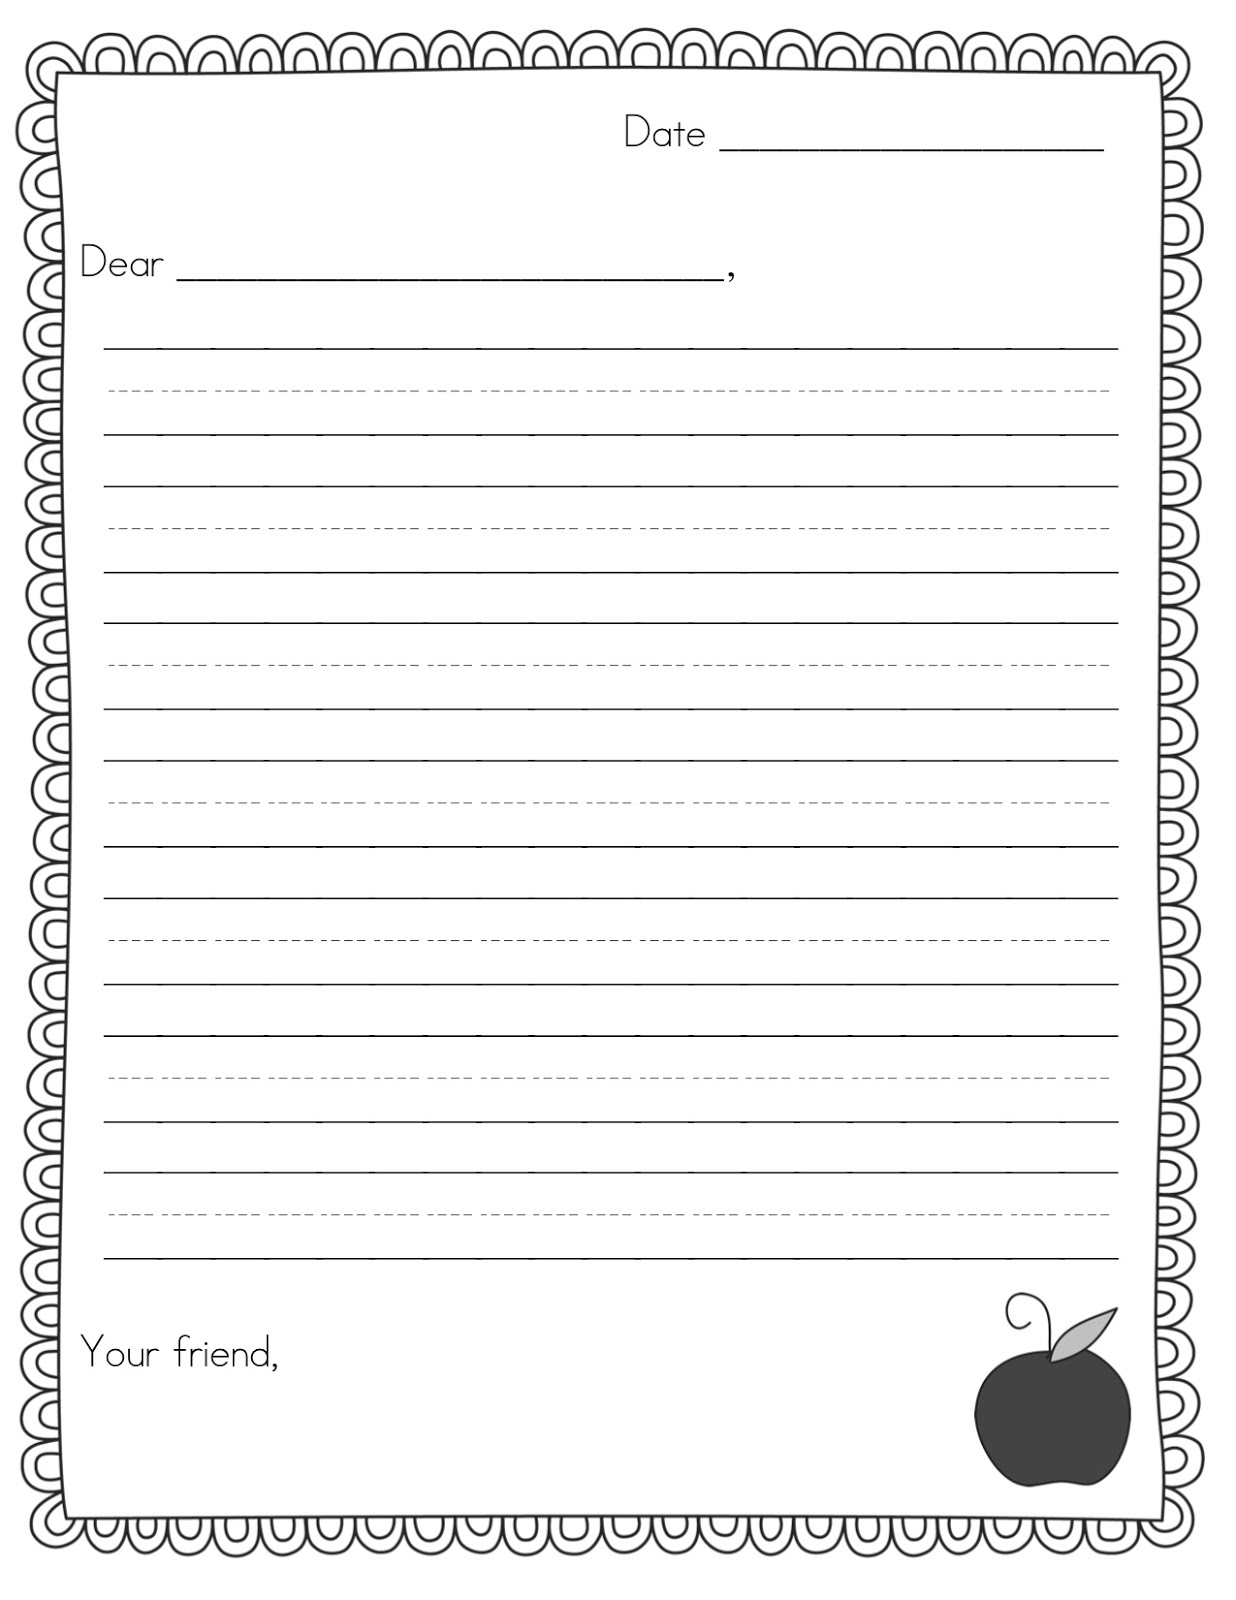 Pen pal news friendly letter freebie teacher idea factory click here to get these free letter templates thanks to jw illustrations fonts for teachers fancy dog spiritdancerdesigns